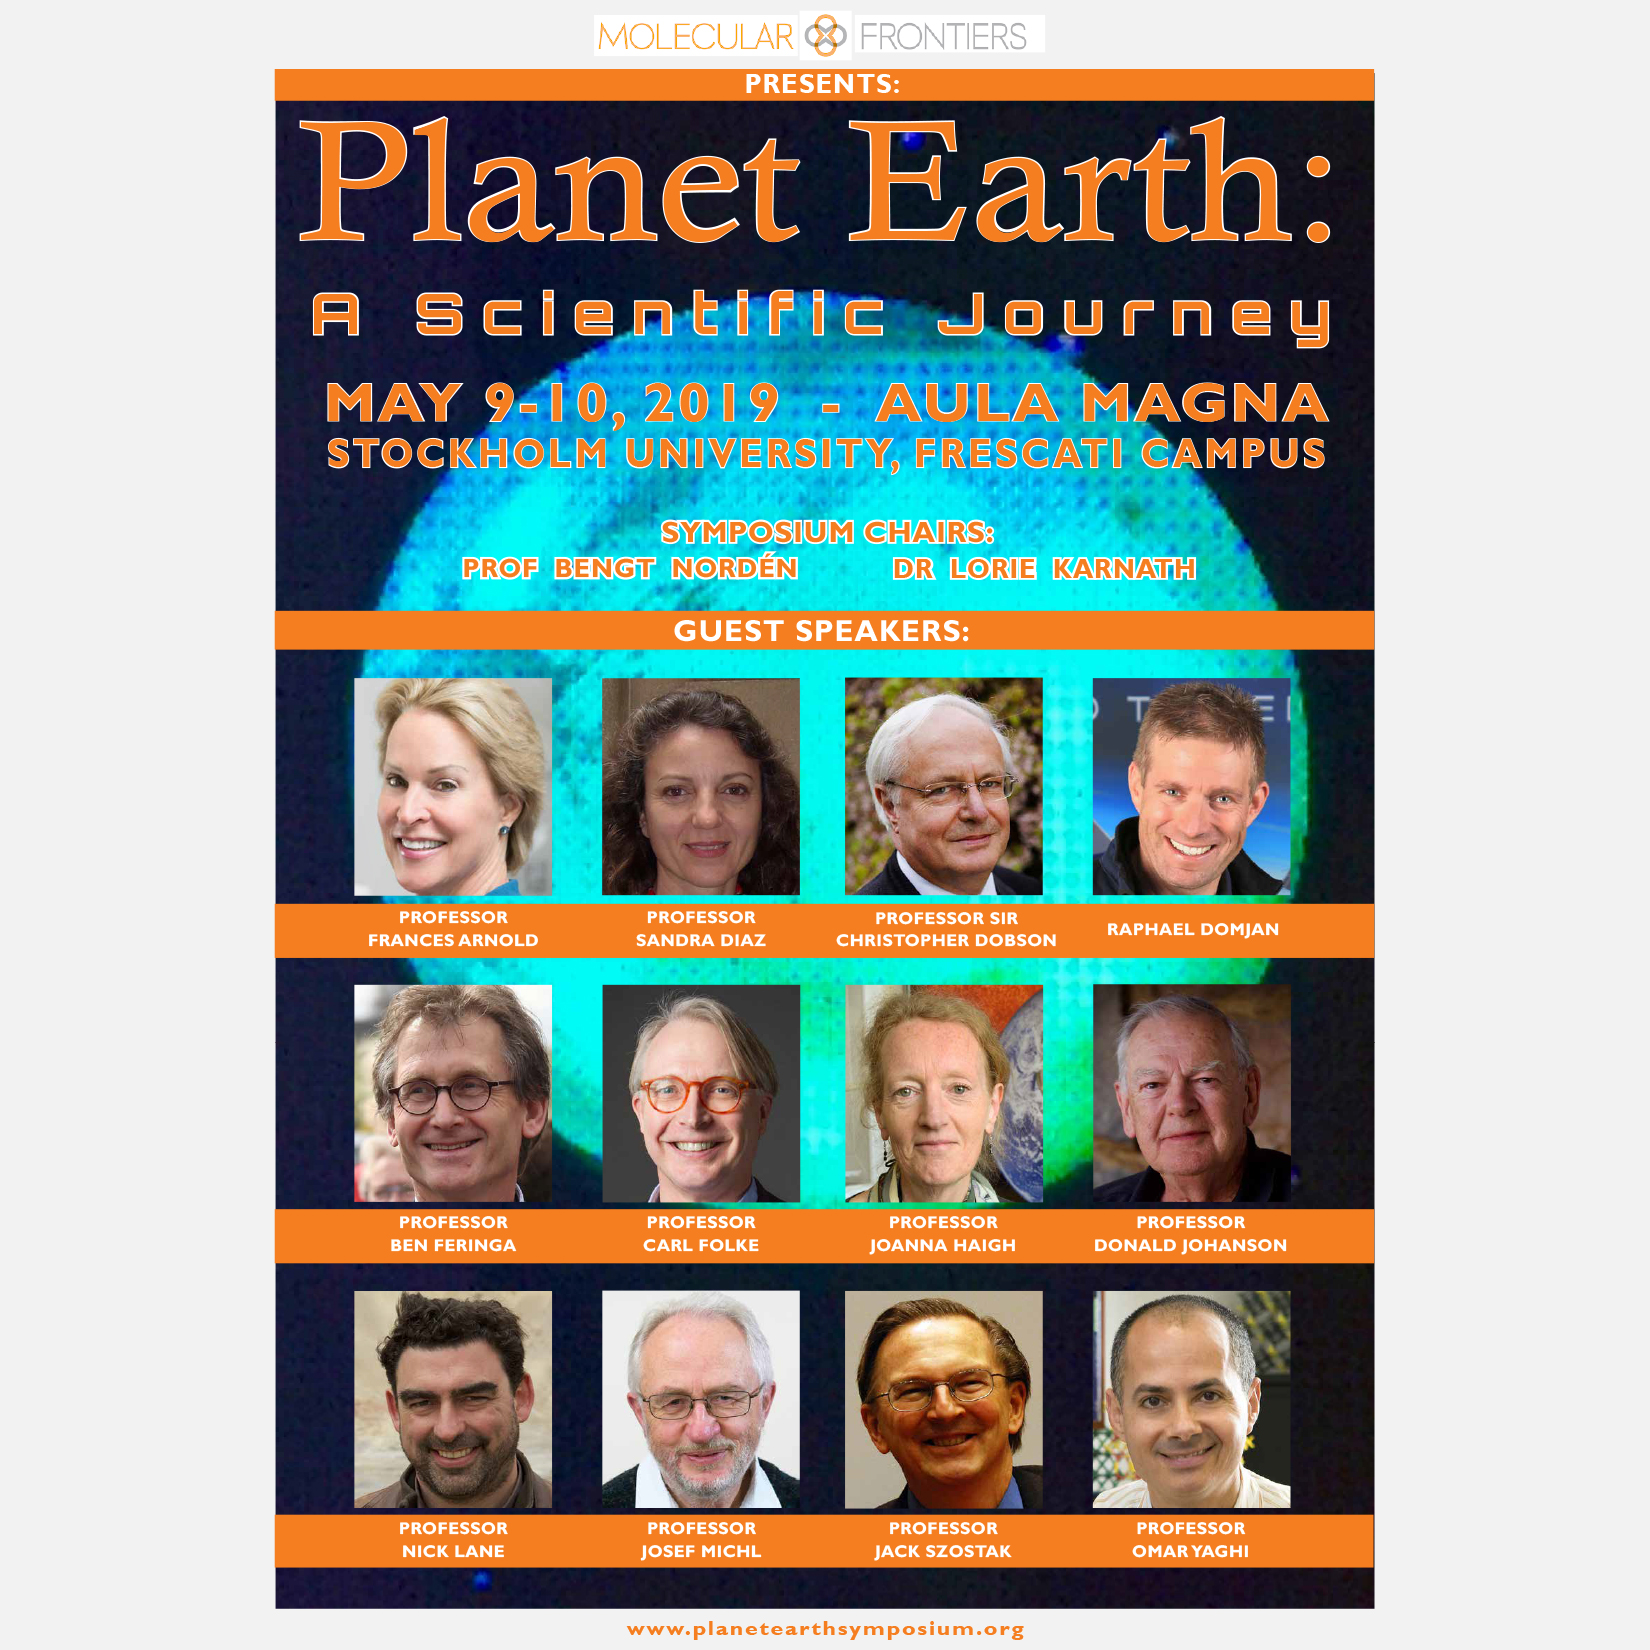 Planet Earth: A Scientific Journey - MAY 9-10, 2019 - AULA MAGNA - STOCKHOLM UNIVERSITY, FRESCATI CAMPUSSymposium Chairs: Prof. Bengt Nordén, Dr. Lorie KanathGuest Speakers: Prof. Frances Arnold, Prof. Sandra Diaz, Prof. Sir Christopher Dobson, Raphael Domjan, Prof. Ben Feringa, Prof. Carl Floke, Prof. Joanna Haigh, Prof. Donald Johanson, Prof. Nick Lane, Prof. Josef Michl, Prof. Jack Szostak, Prof. Omar Yaghi